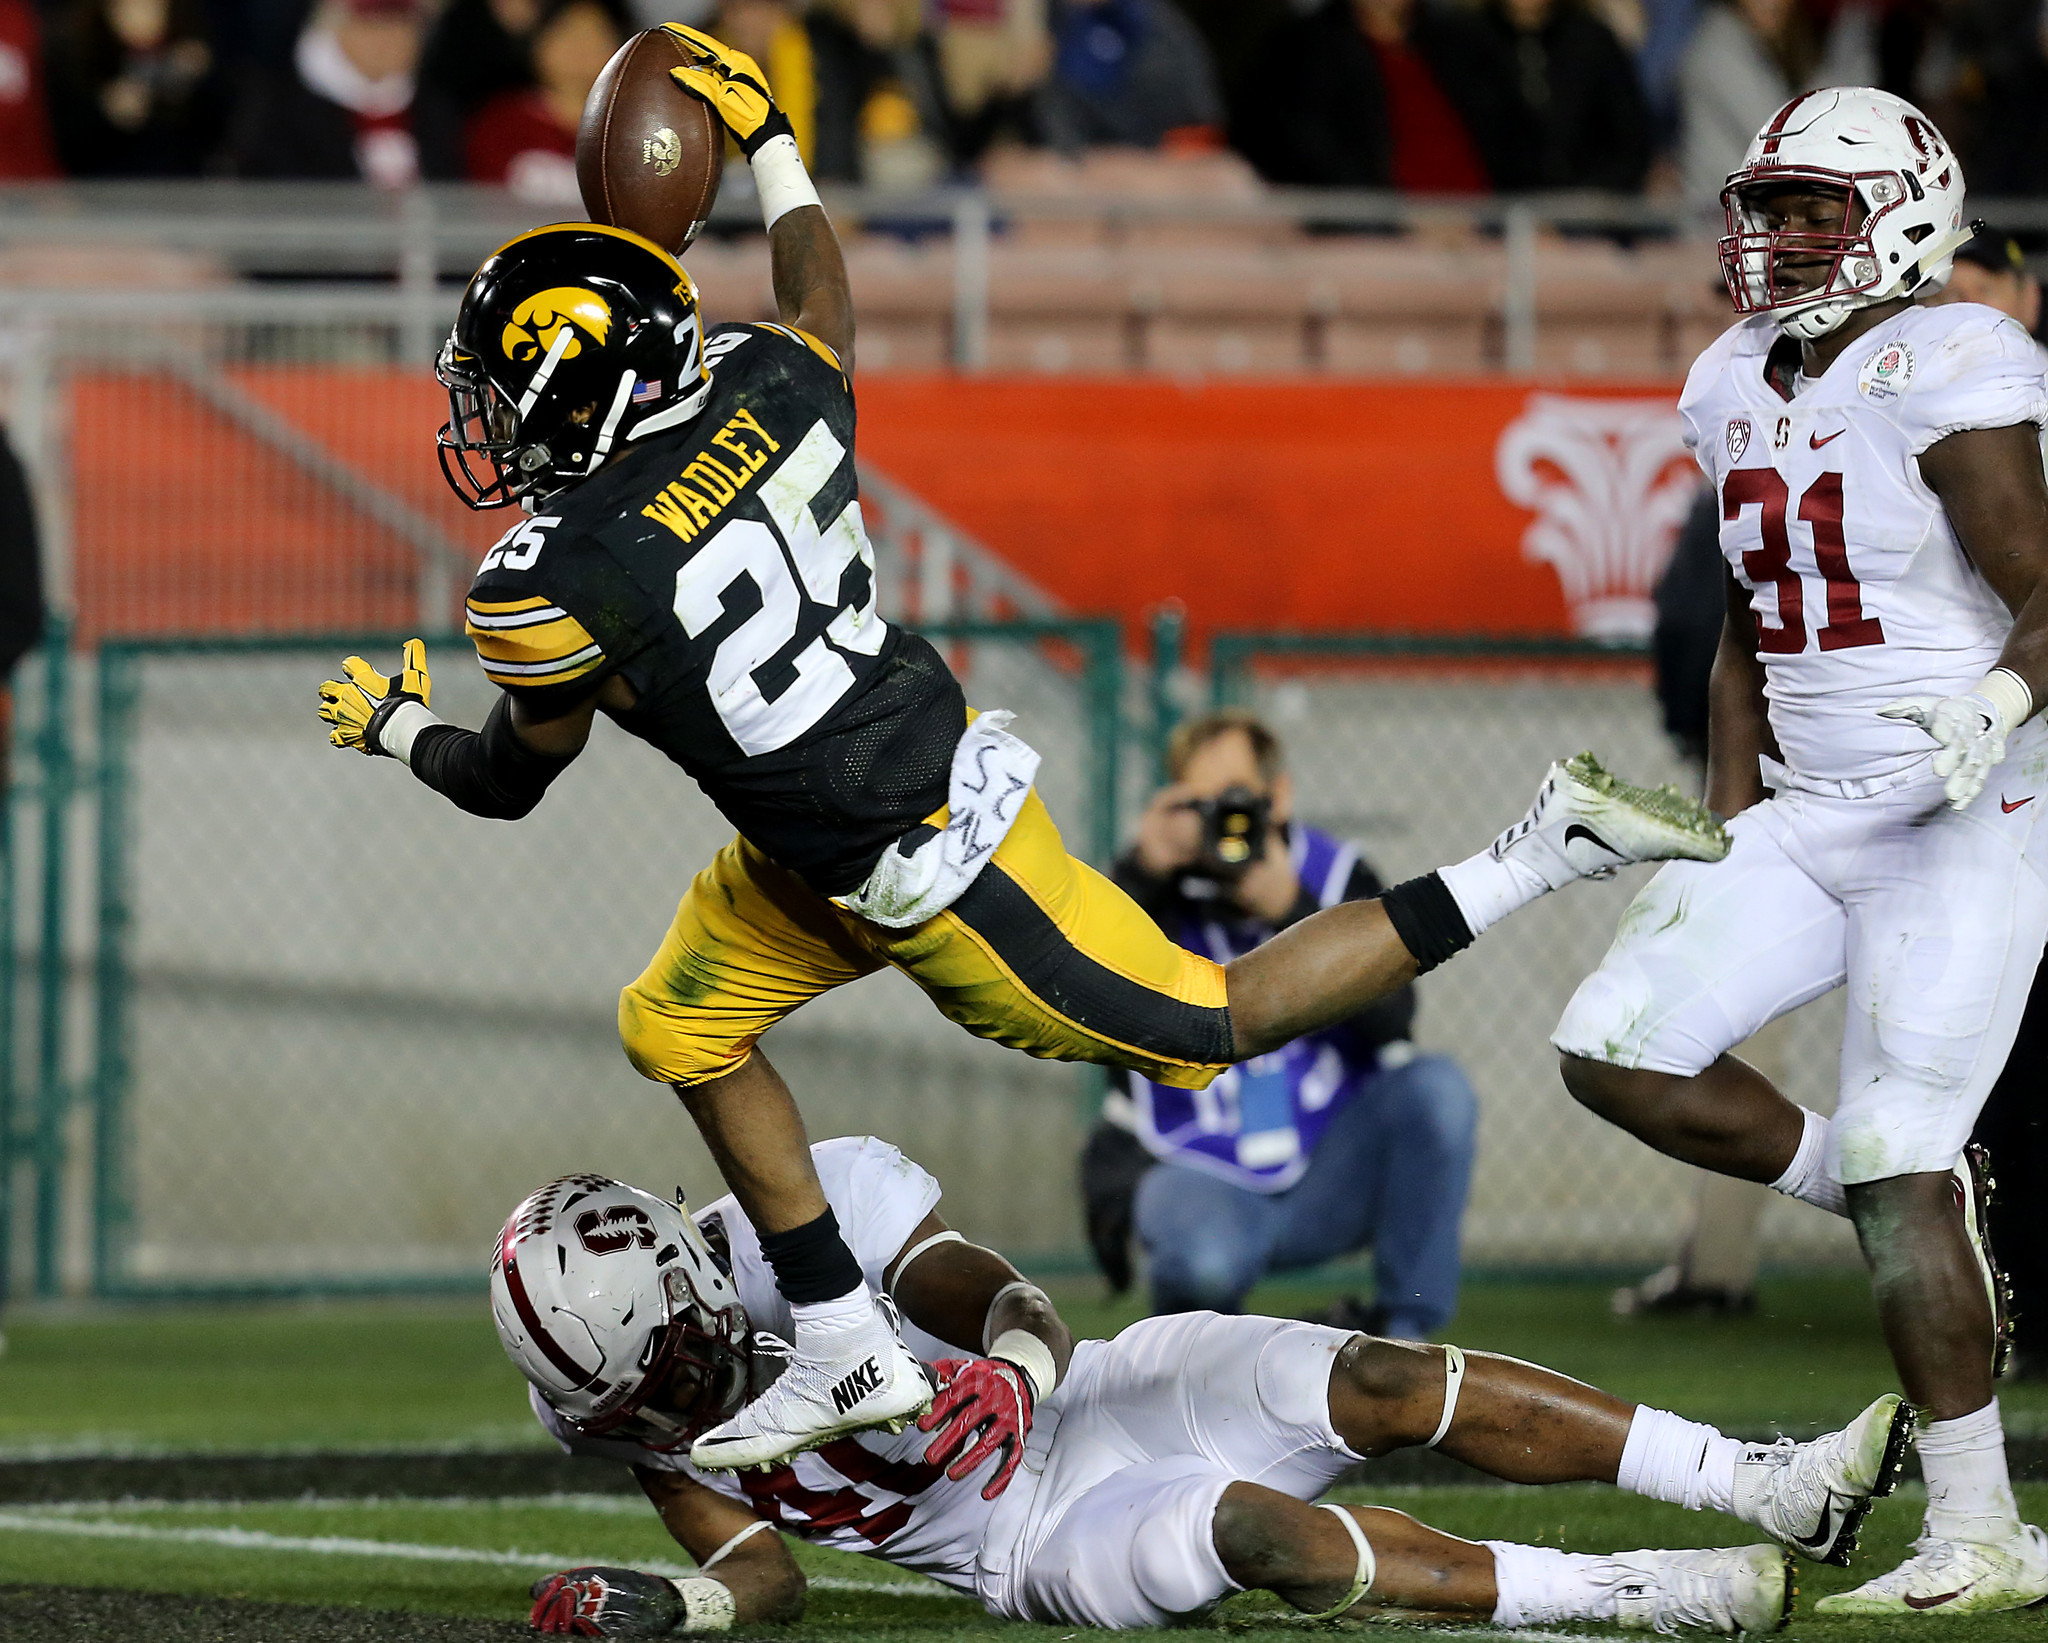 Akrum Wadley dives into the end zone for a touchdown. (Luis Sinco / Los Angeles Times)